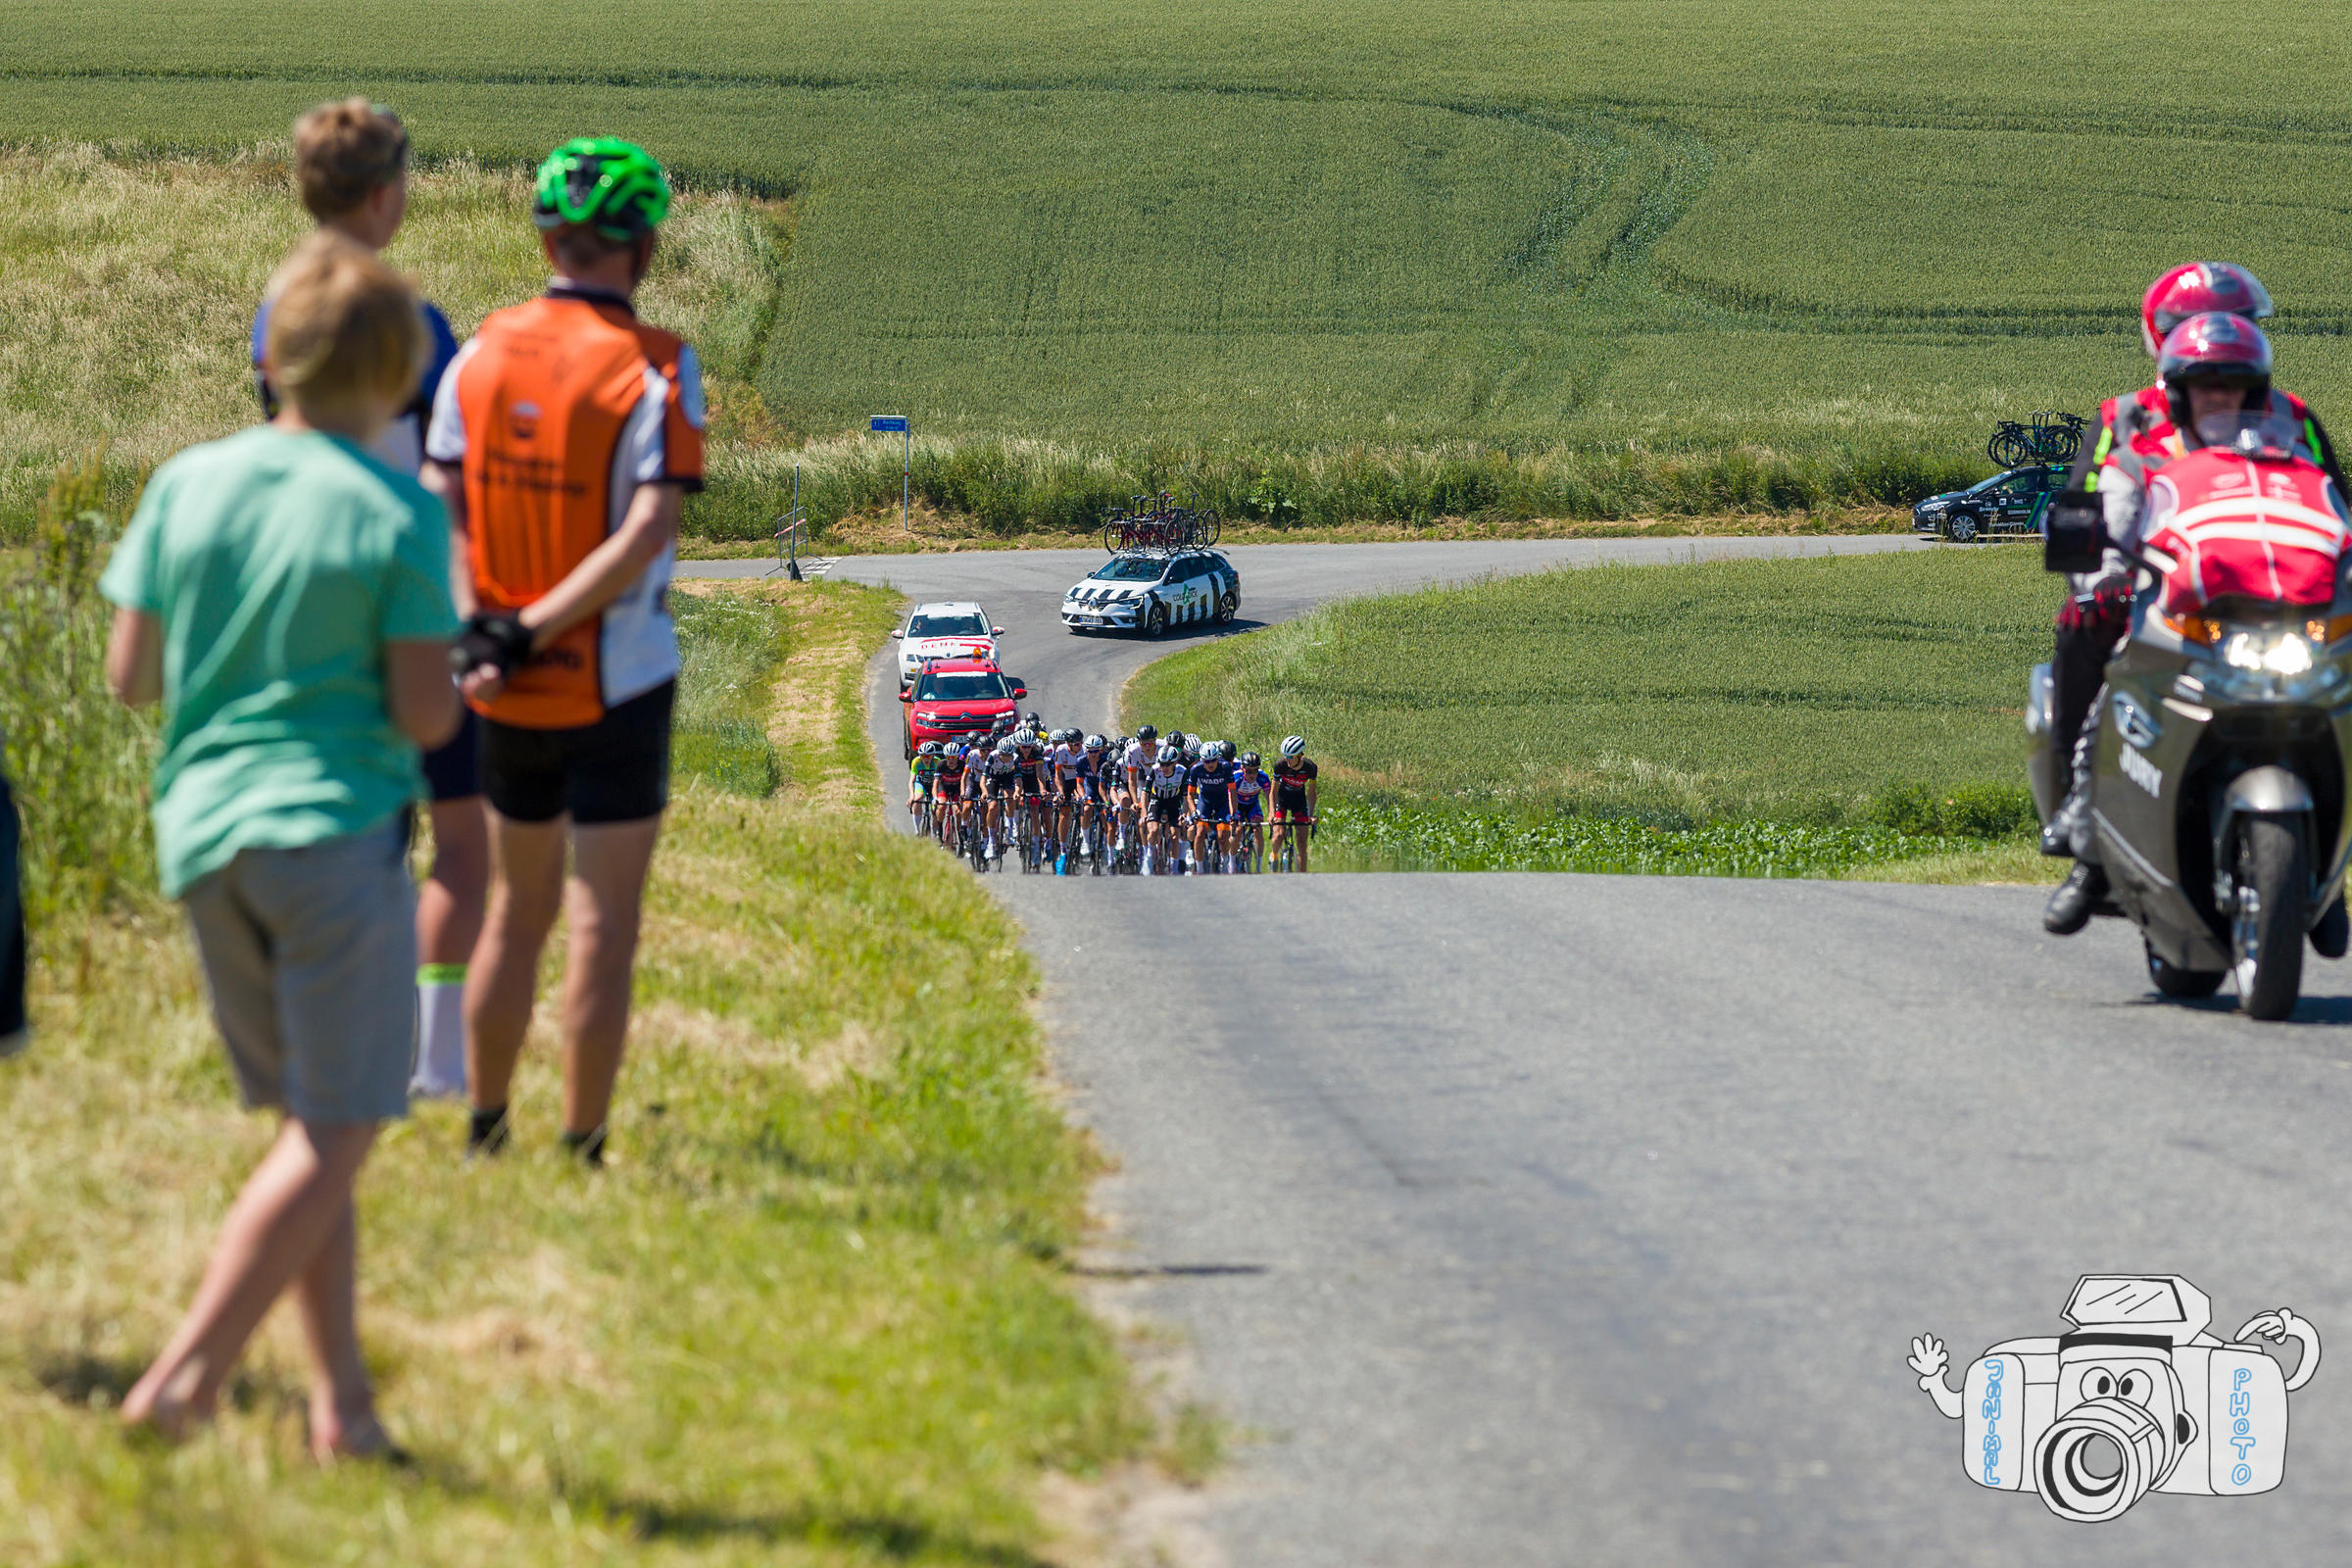 The 2019 Danish National Championships Men U23 Road Race